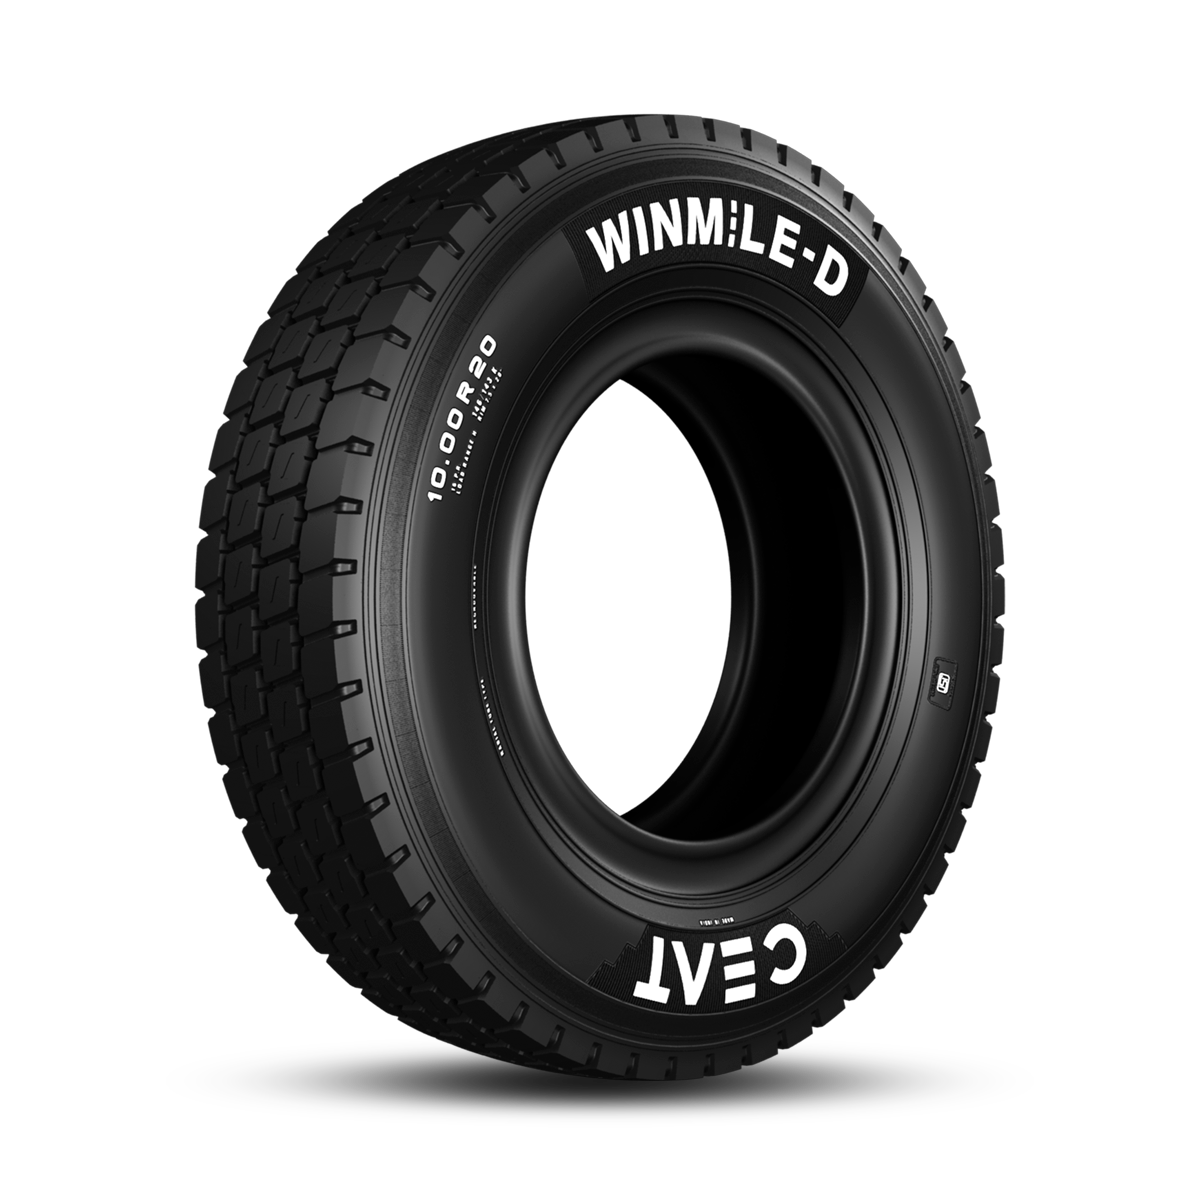 Ceat WINMILE - D truck Tyres Price & Review | CEAT WINMILE